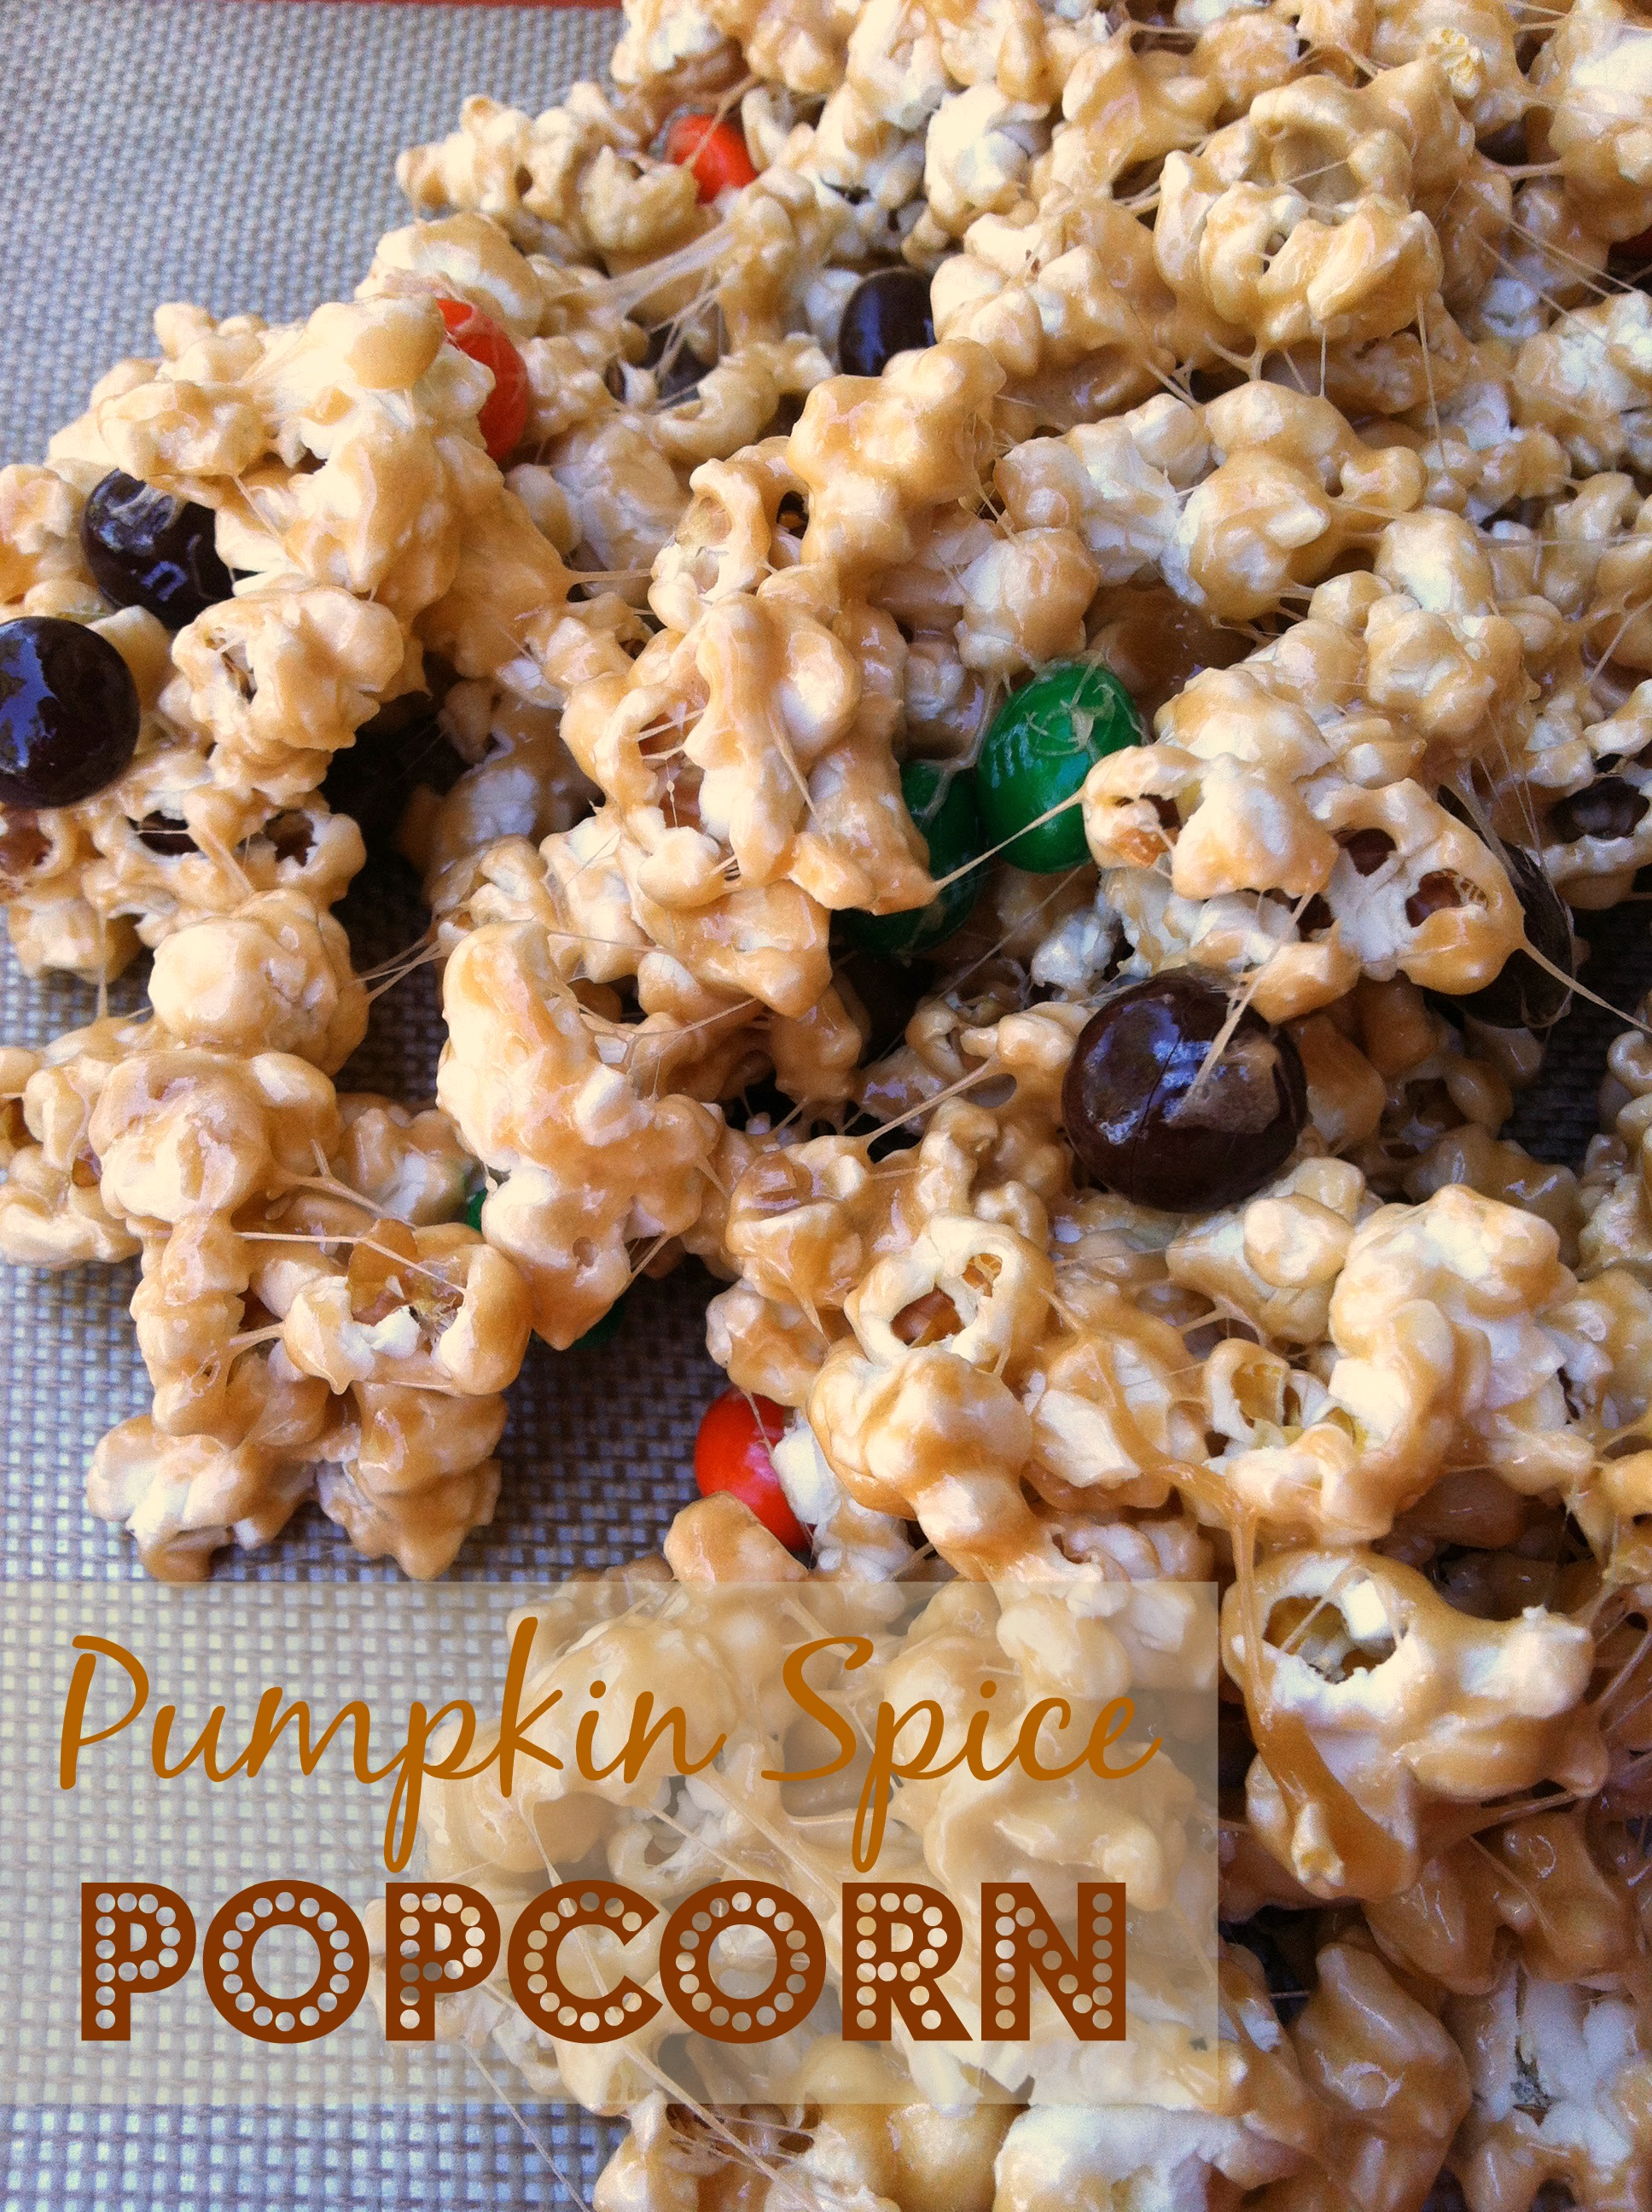 Pumpkin Spice Popcorn (Halloween Treat)